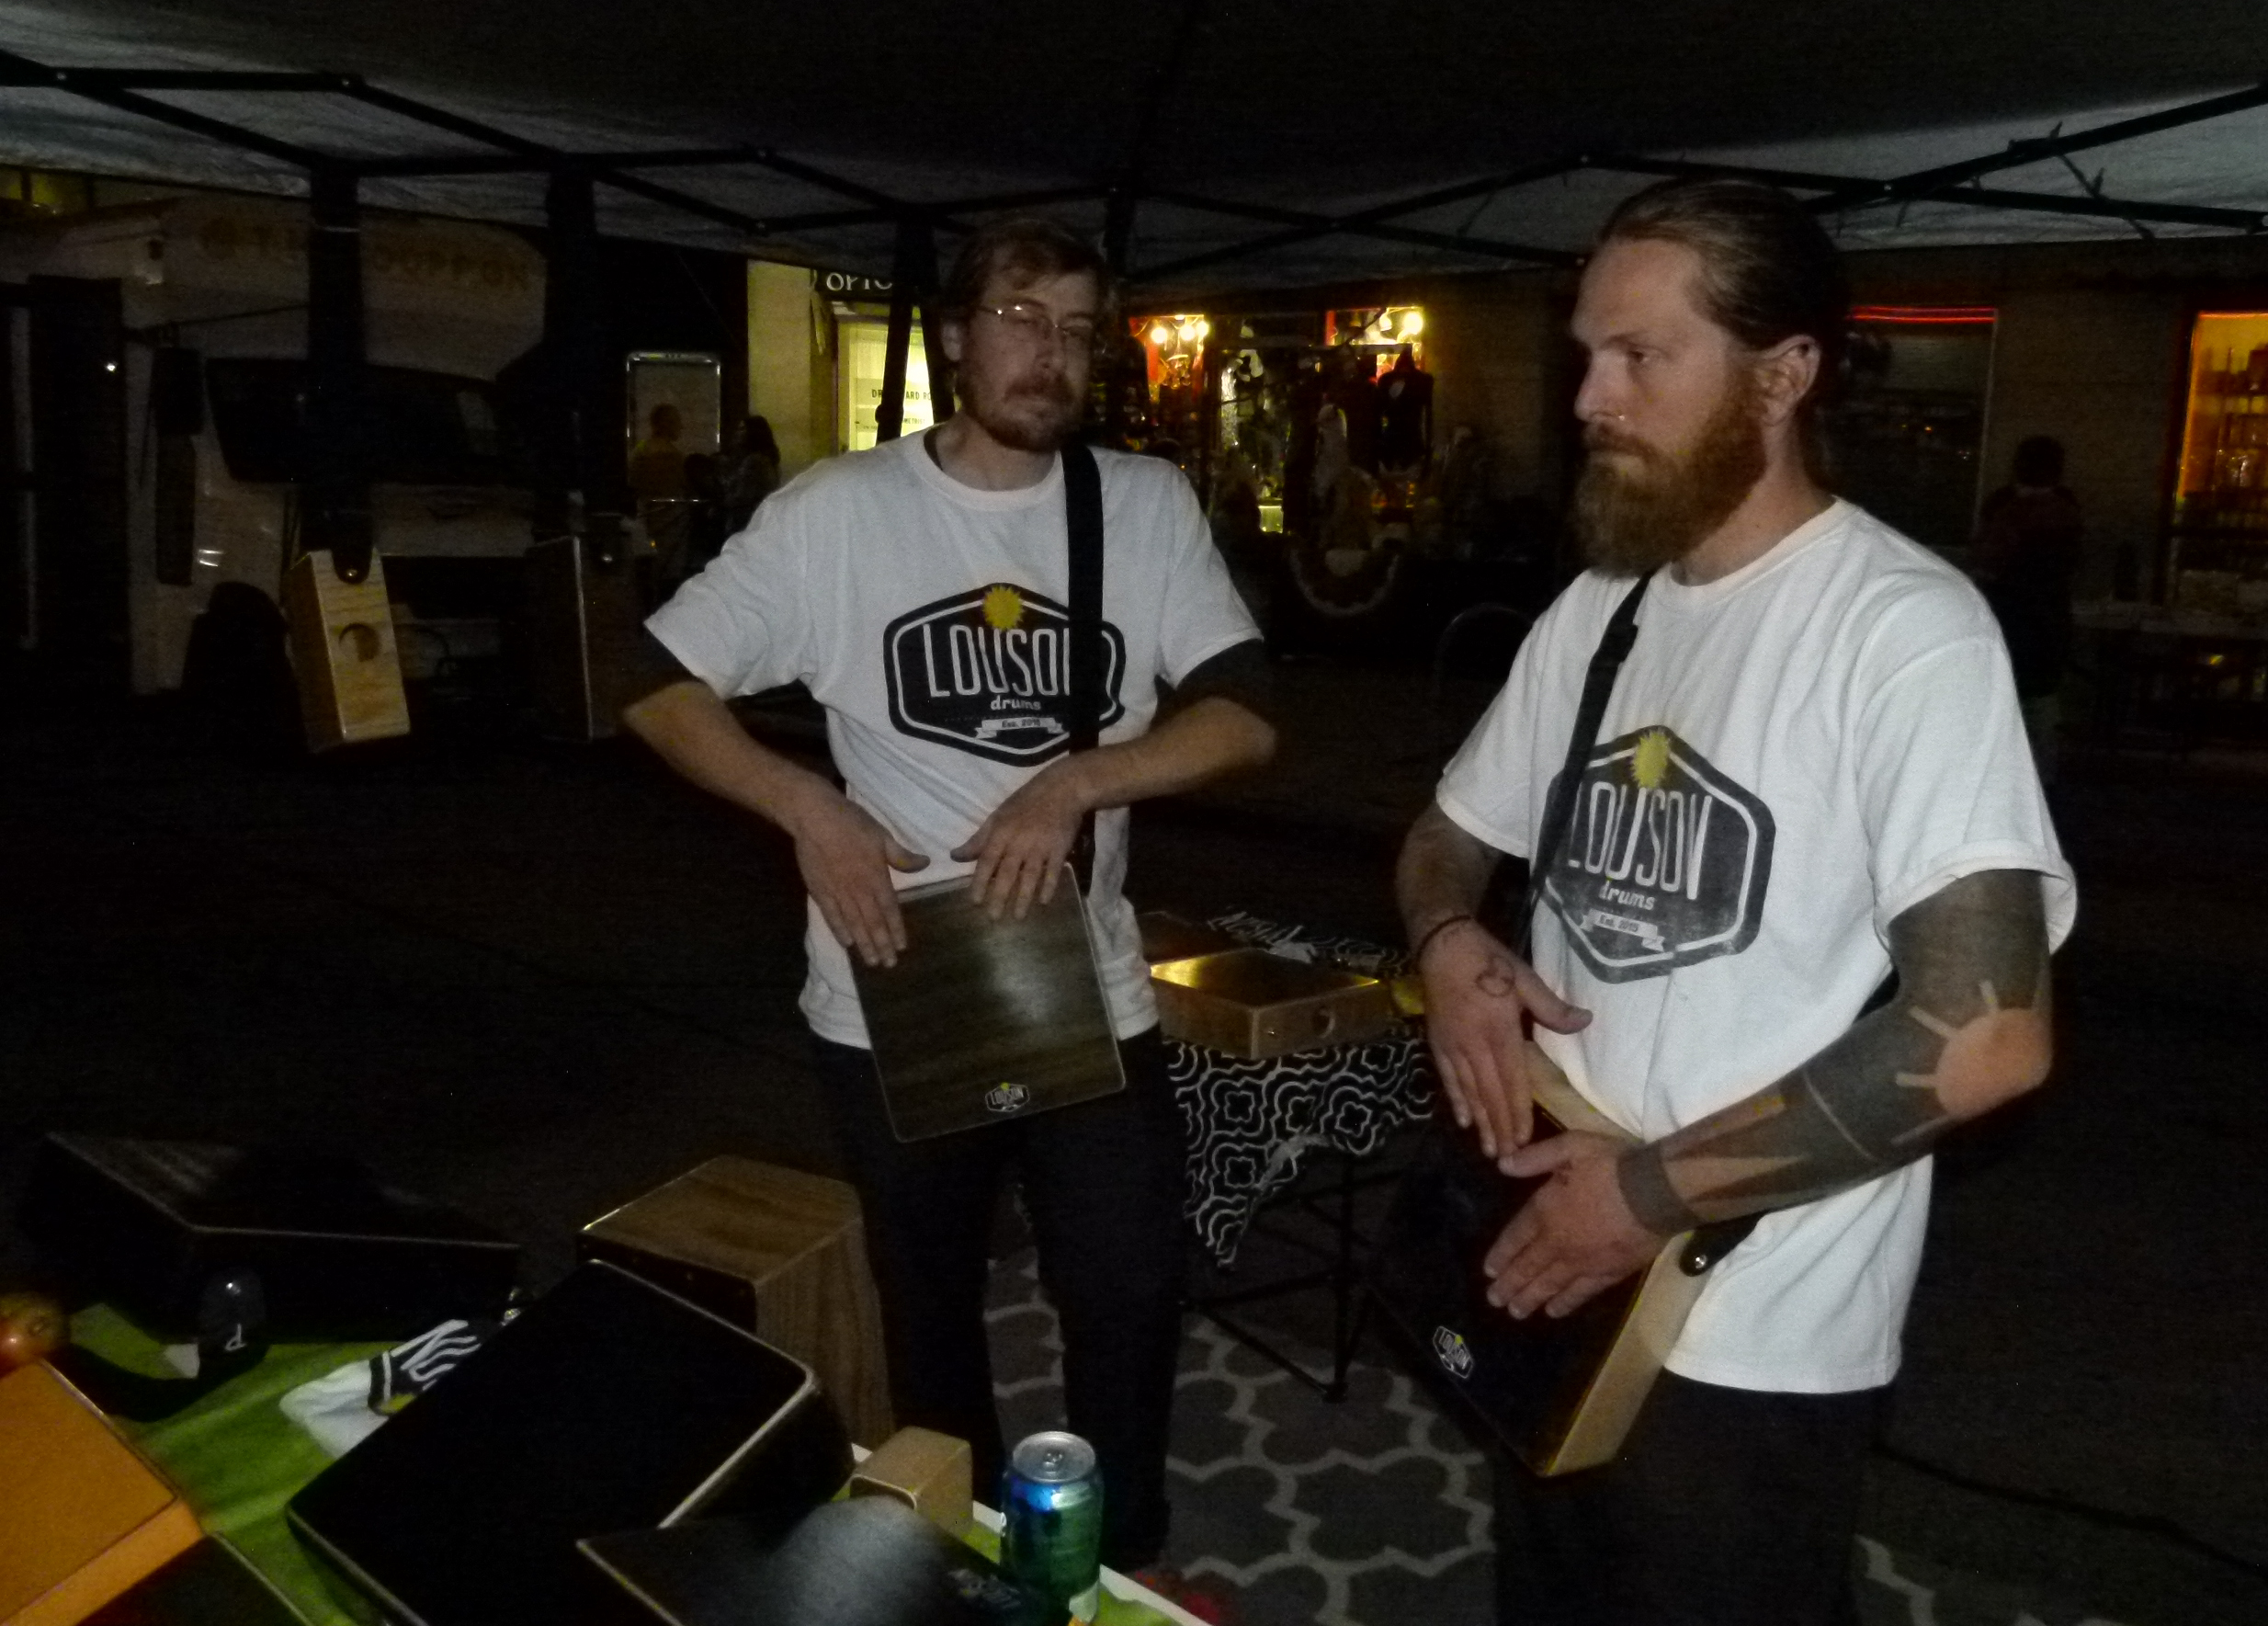 Carson Cashman (l.) and Lou Manione (r.) play cajon tablets. Their Louson CajonTabs are custom made and modeled on a Peruvian percussion instrument.